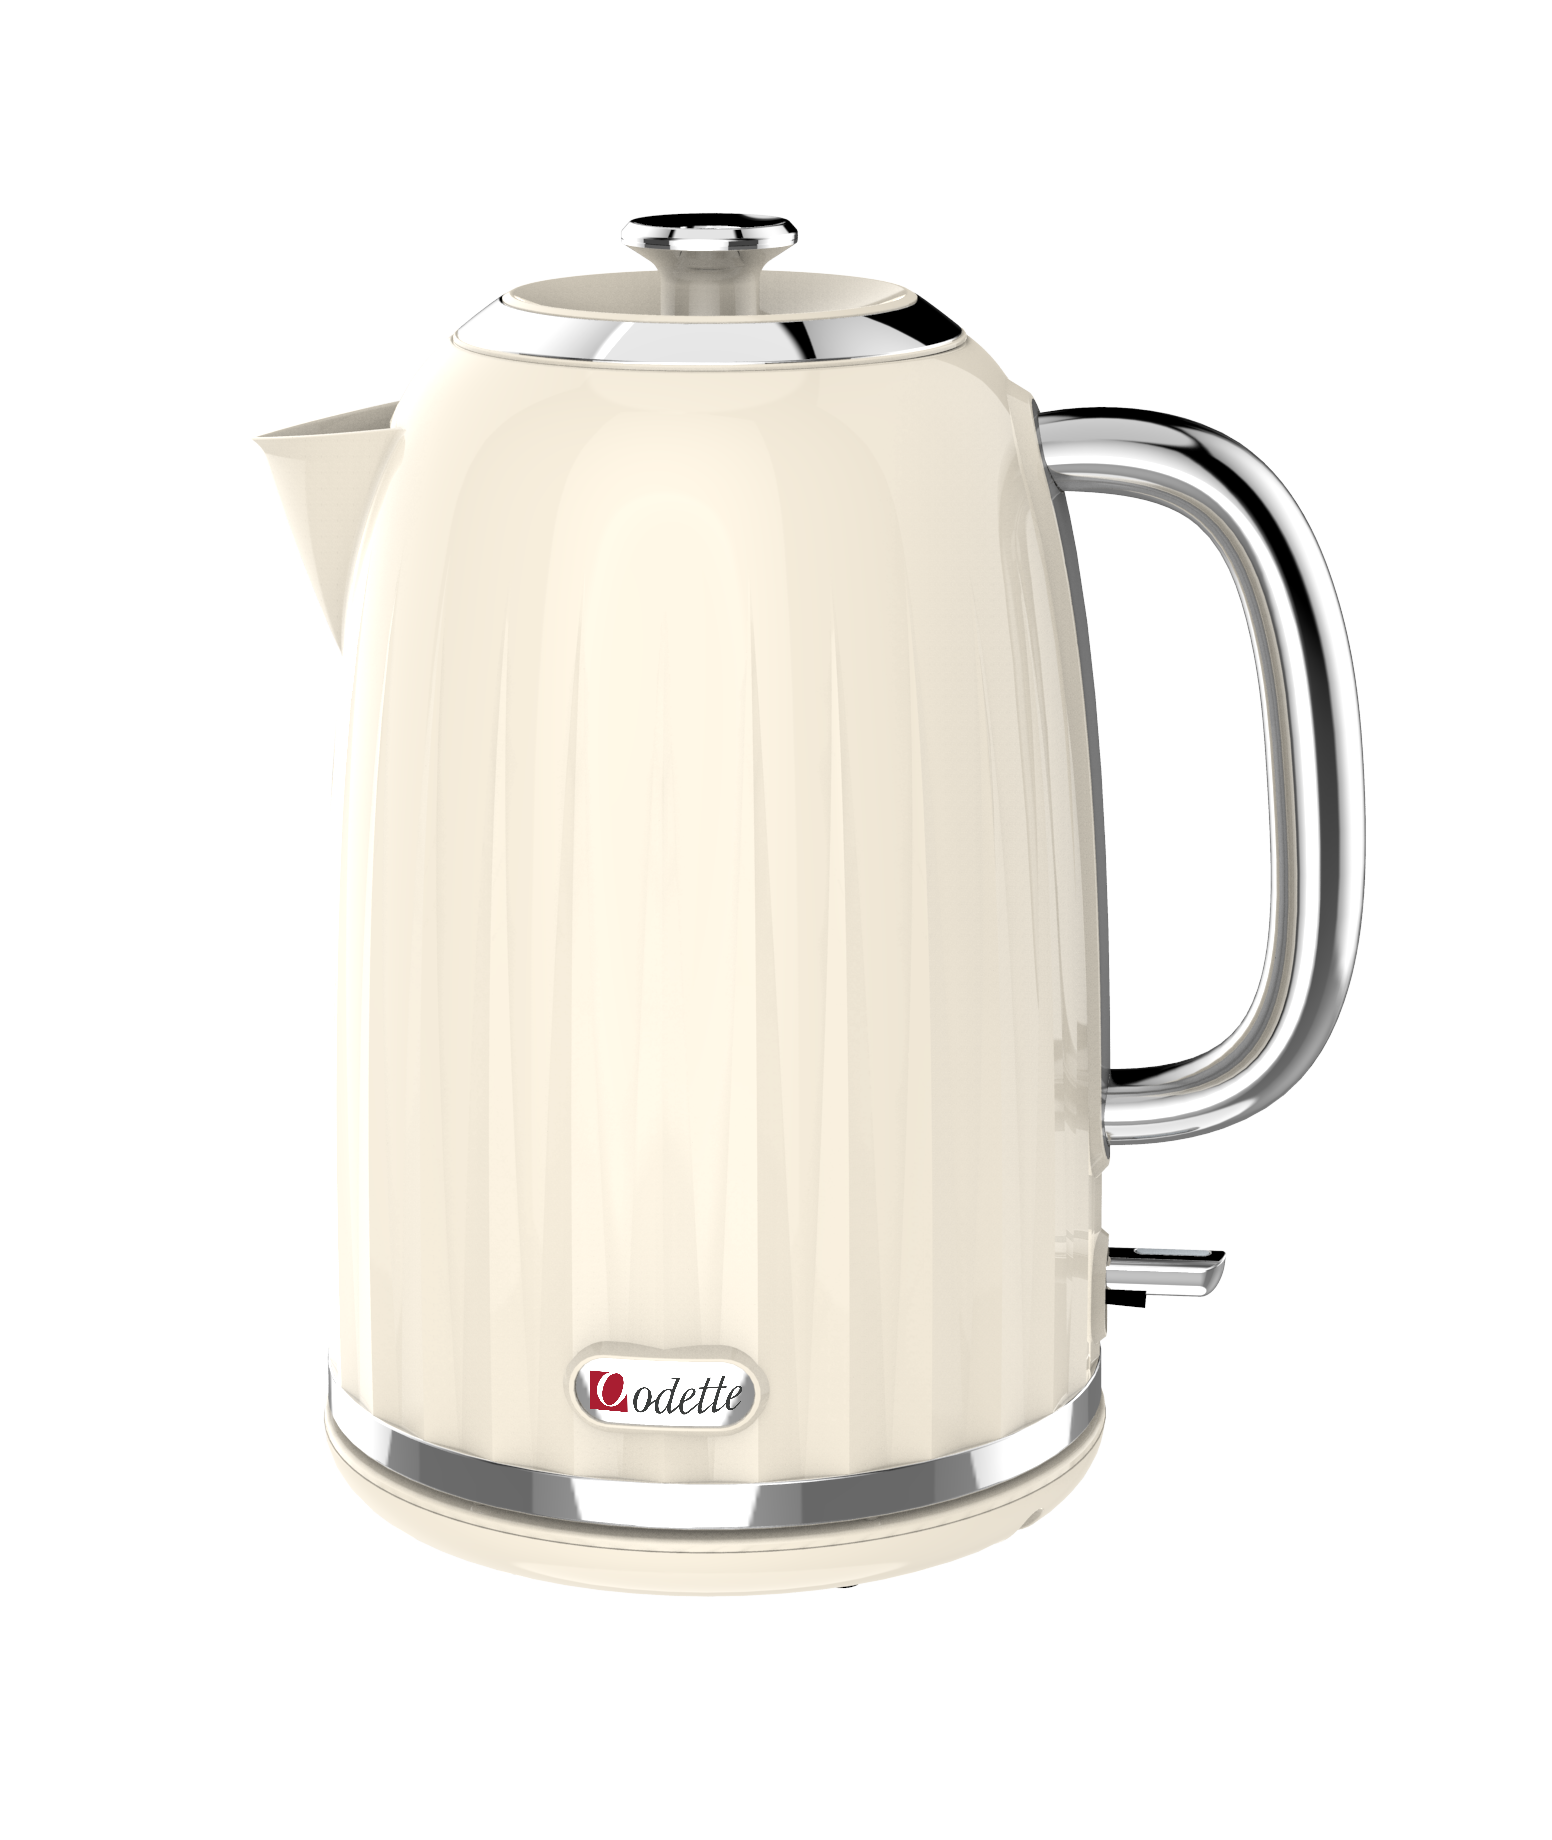 1.7L Retro design Electric Kettle - Beige thumbnail image 1